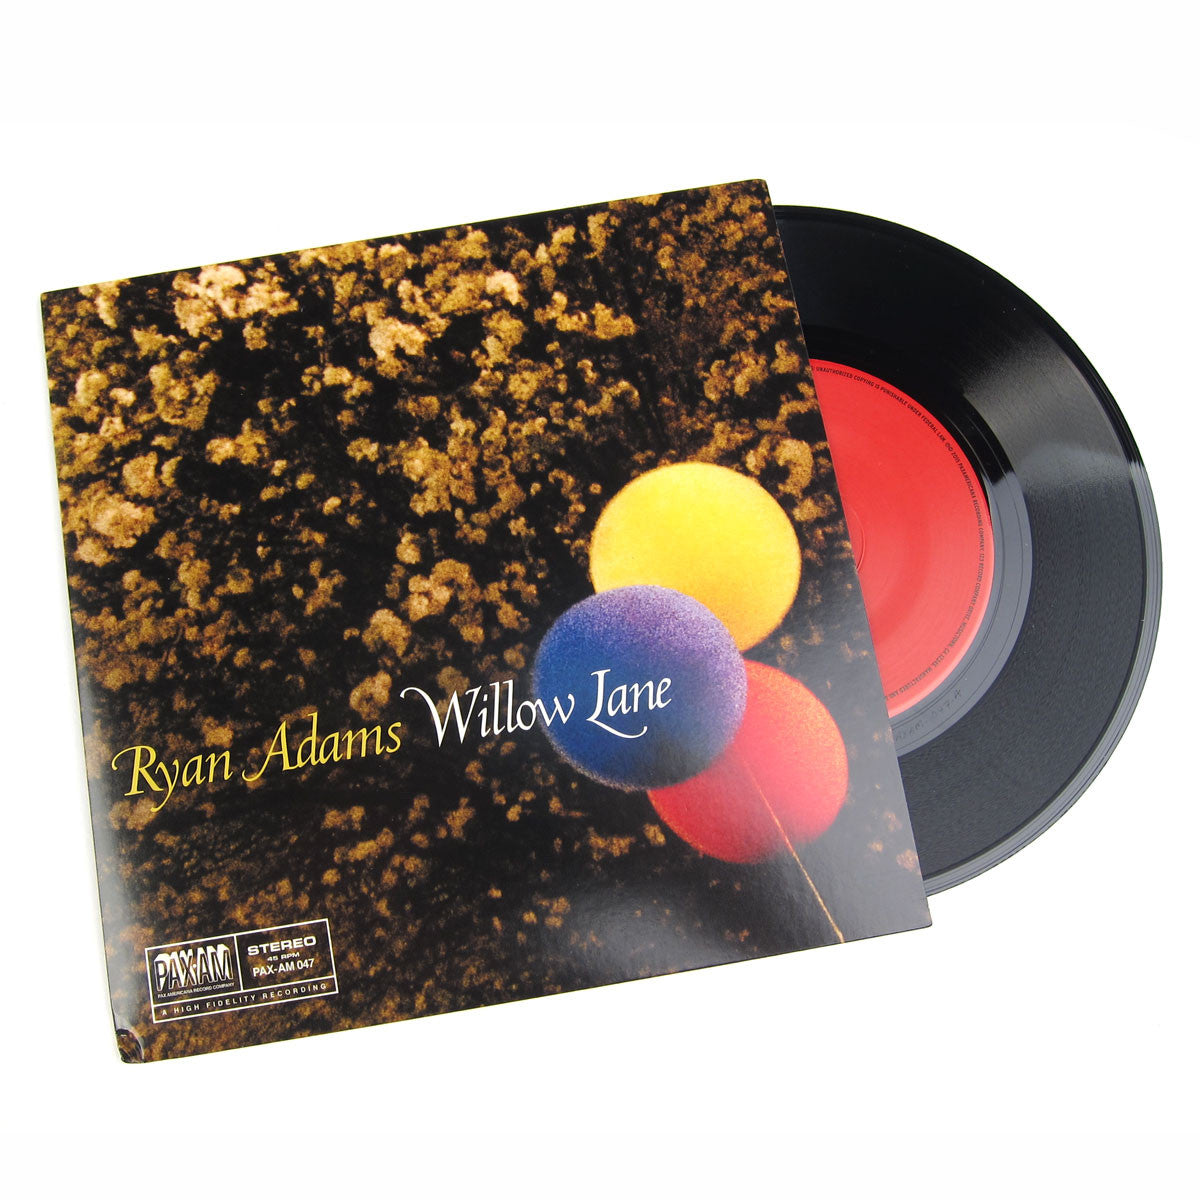 Ryan Adams: Willow Lane (Limited Edition) Vinyl 7""